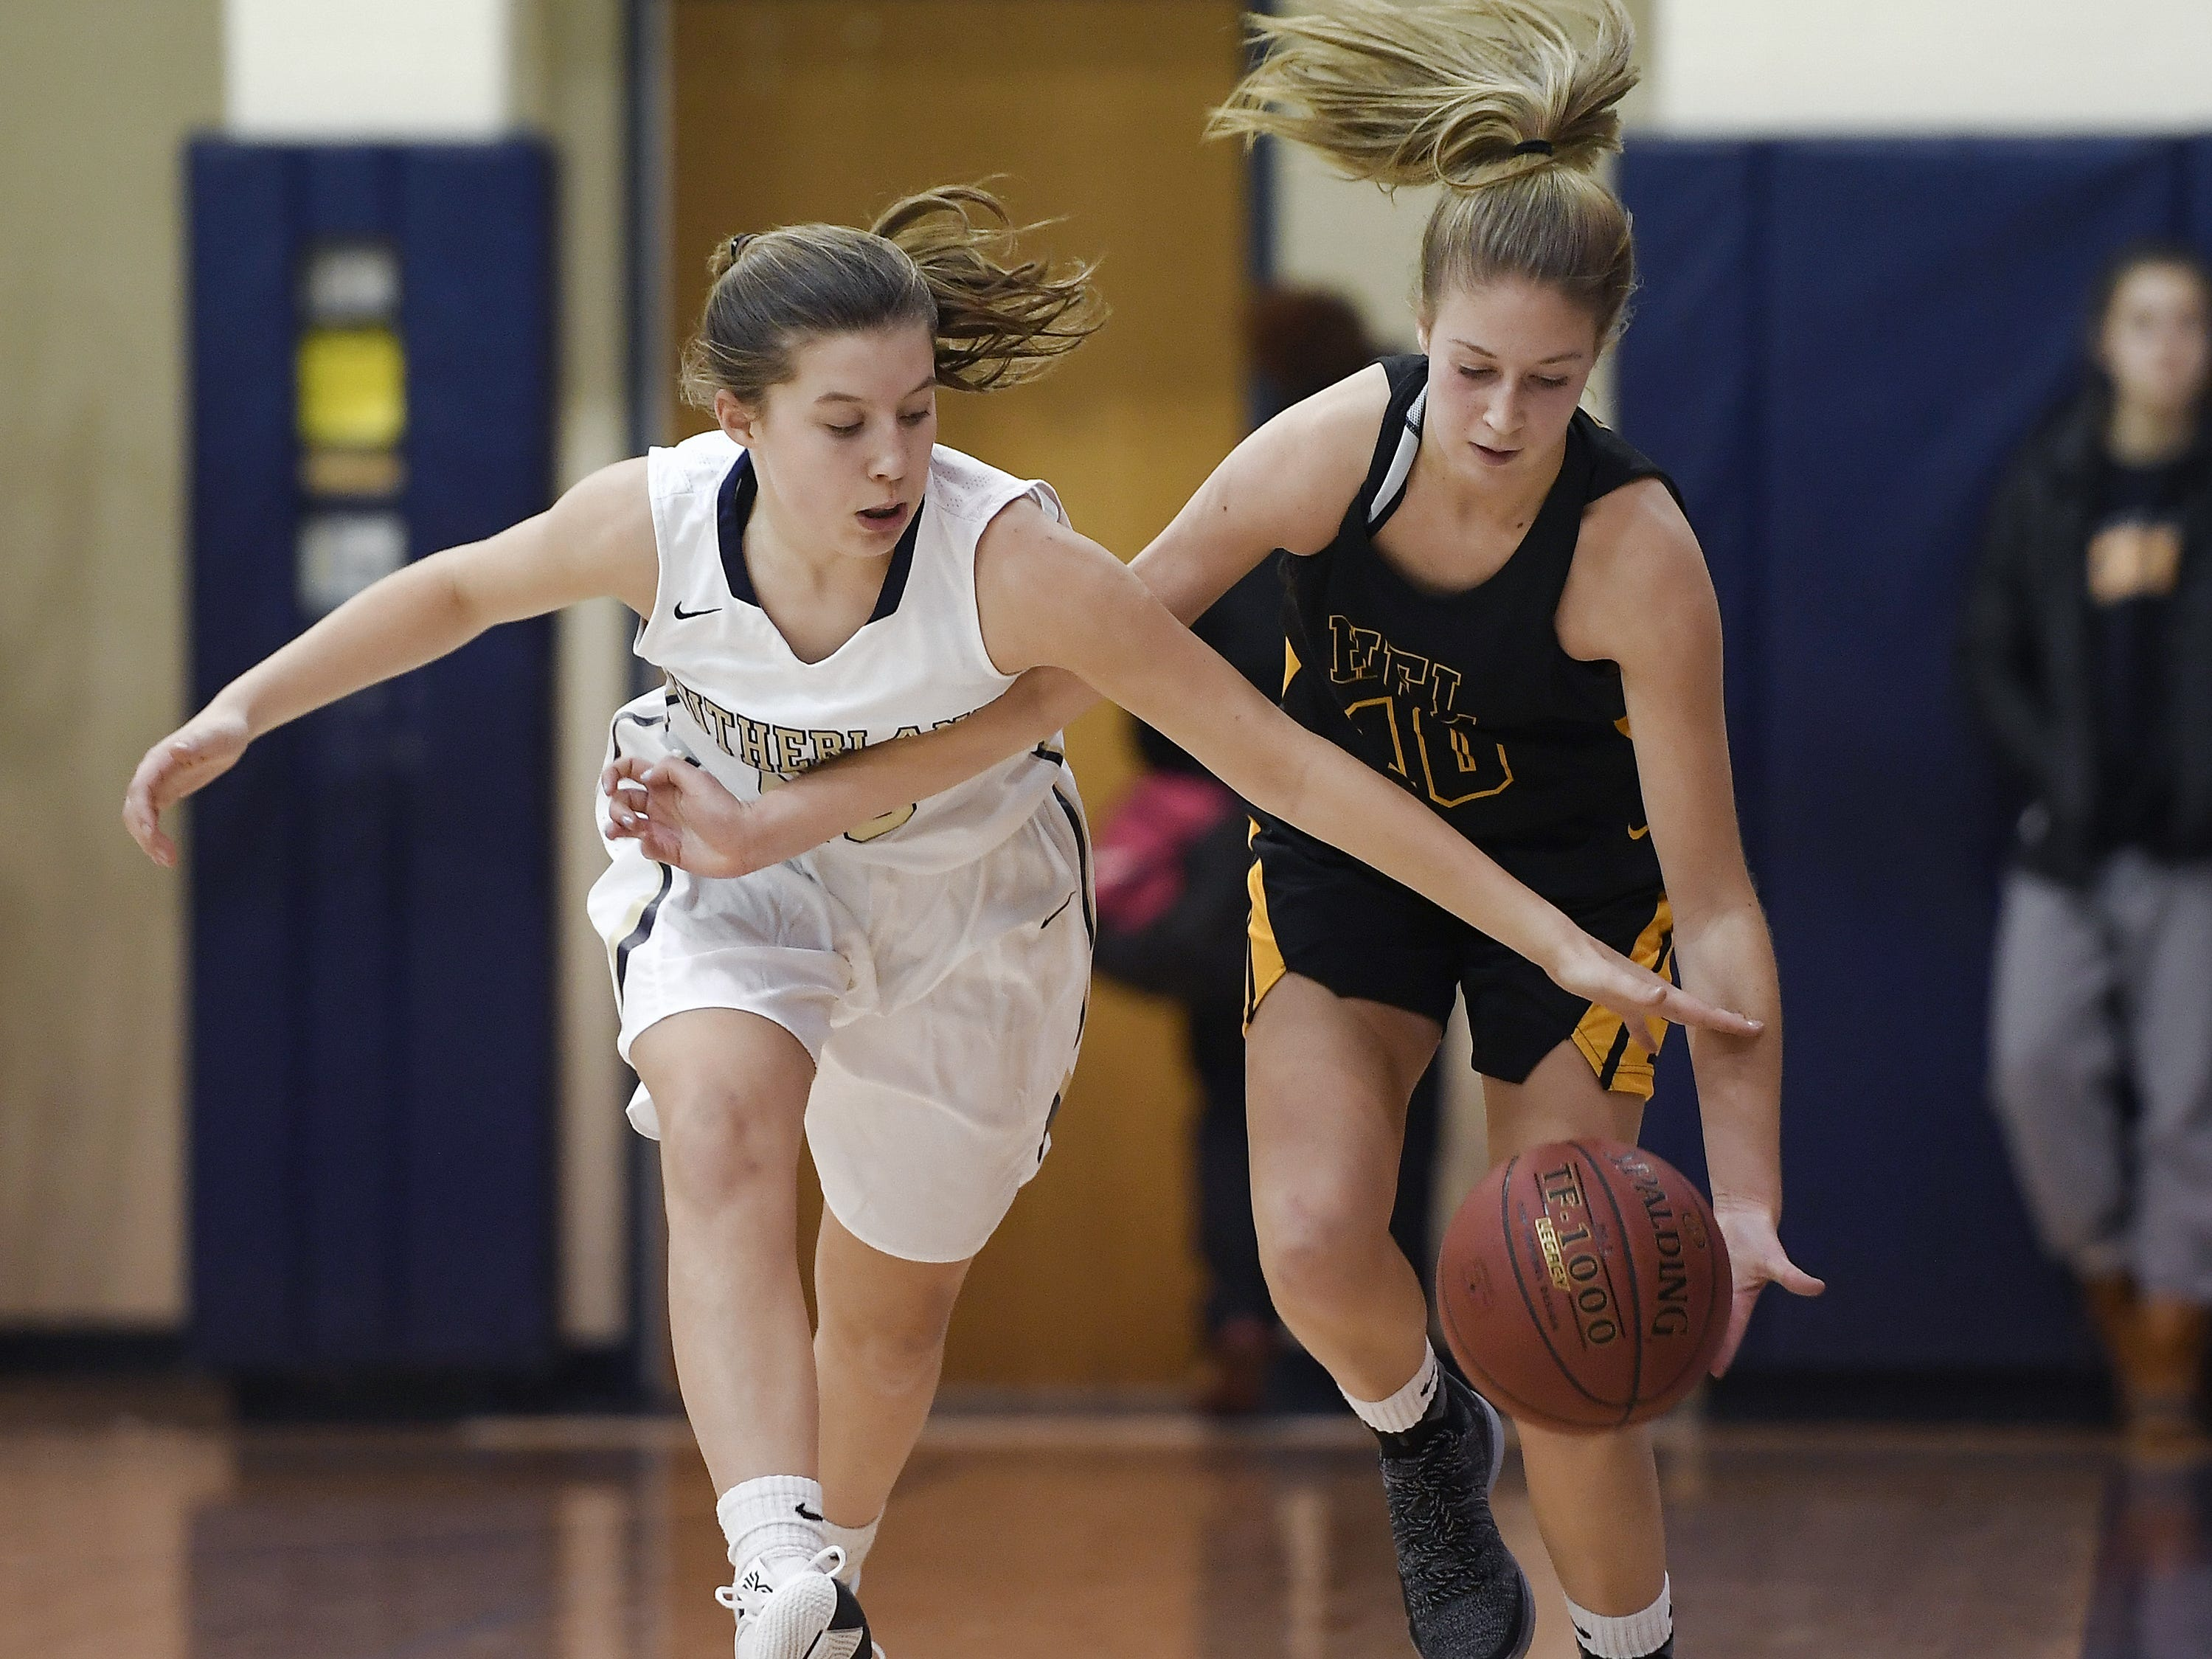 Pittsford Sutherland's Ellie Bergin, left, and HF-L's Hannah Selke chase a loose ball during a regular season game played at Pittsford Sutherland High School on Thursday, Nov. 29, 2018. Pittsford Sutherland beat Honeoye Falls-Lima in overtime 53-47.